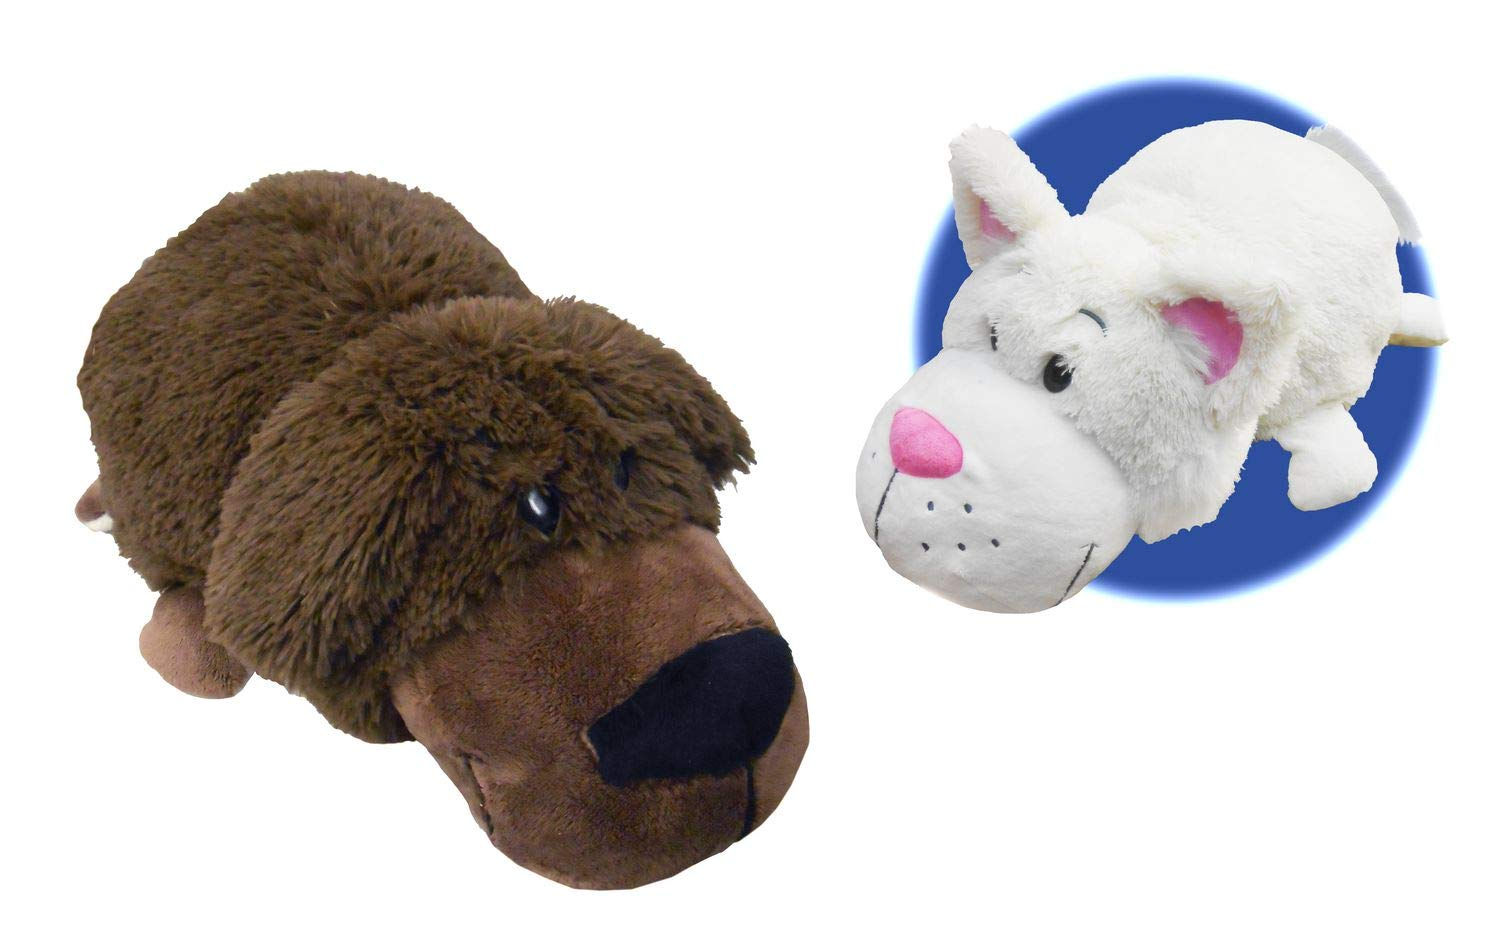 FlipaZoo 16'' Plush 2-in-1 Pillow - Chocolate Labrador Transforming To White Cat (the Toy that Flips for you)